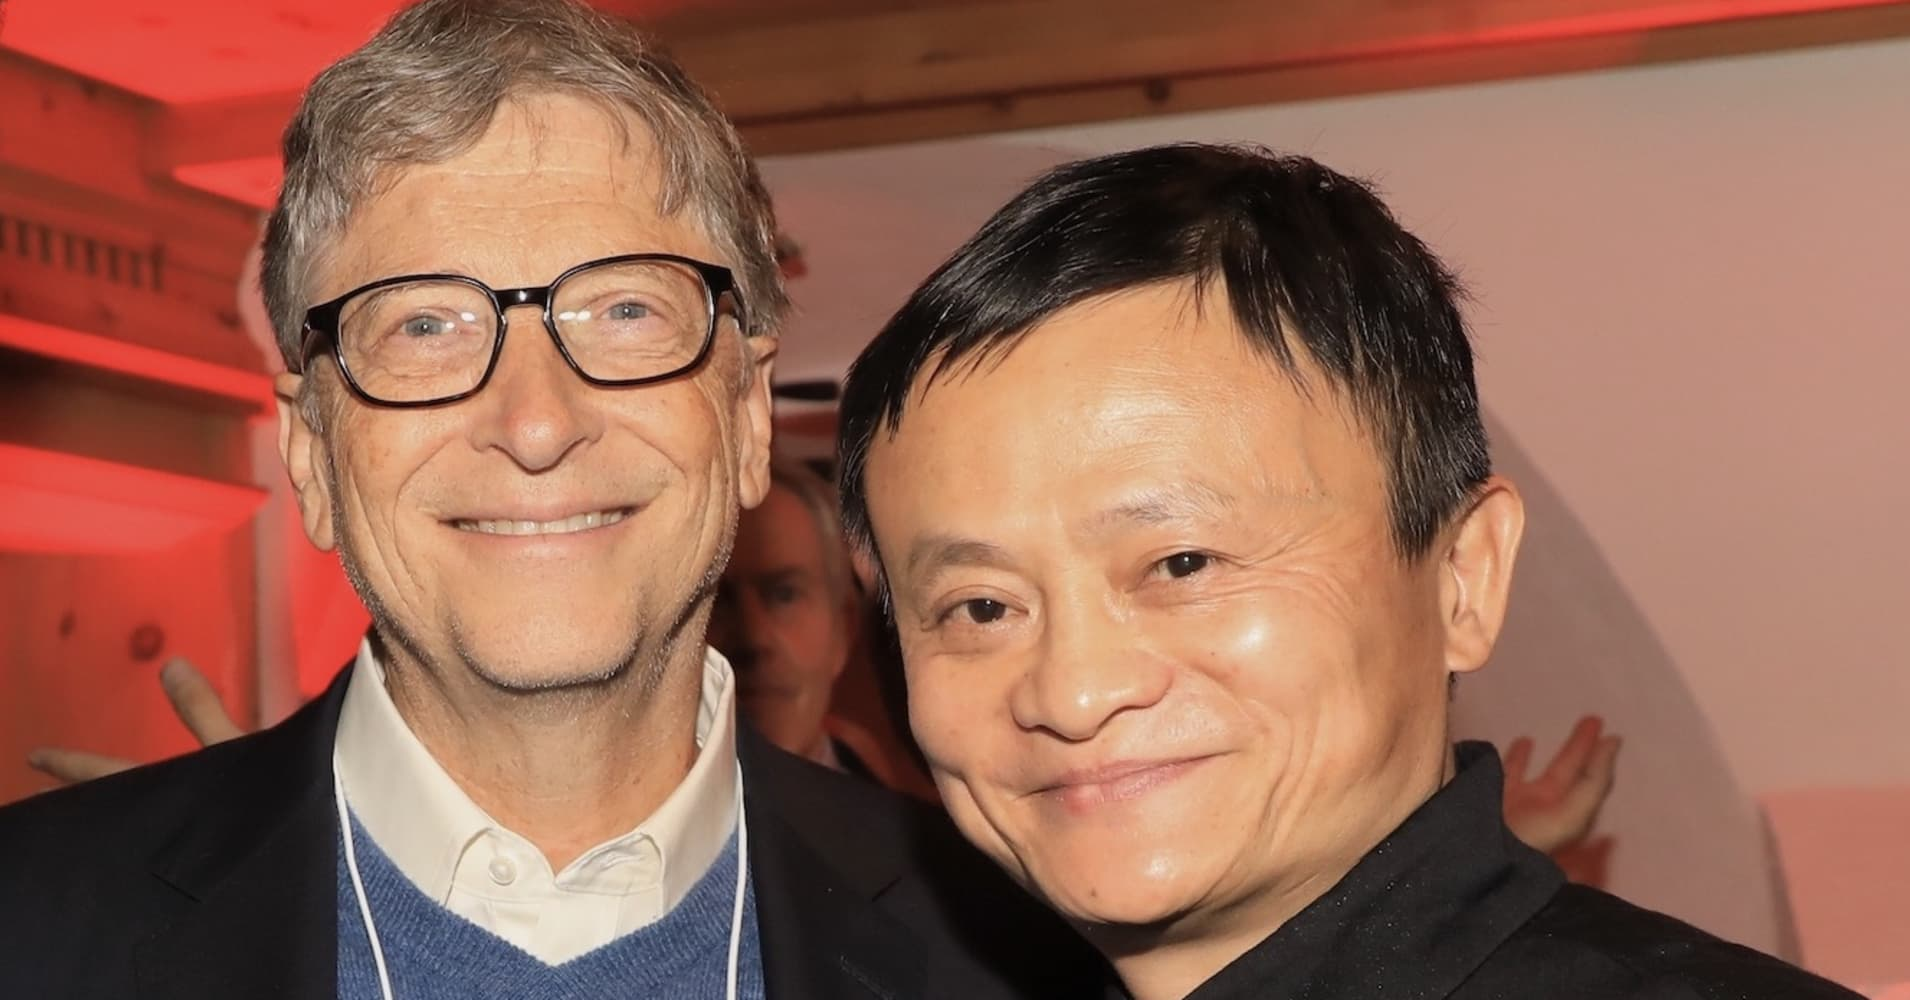 Alibaba S Jack Ma I Will Do This One Thing Better Than Bill Gates